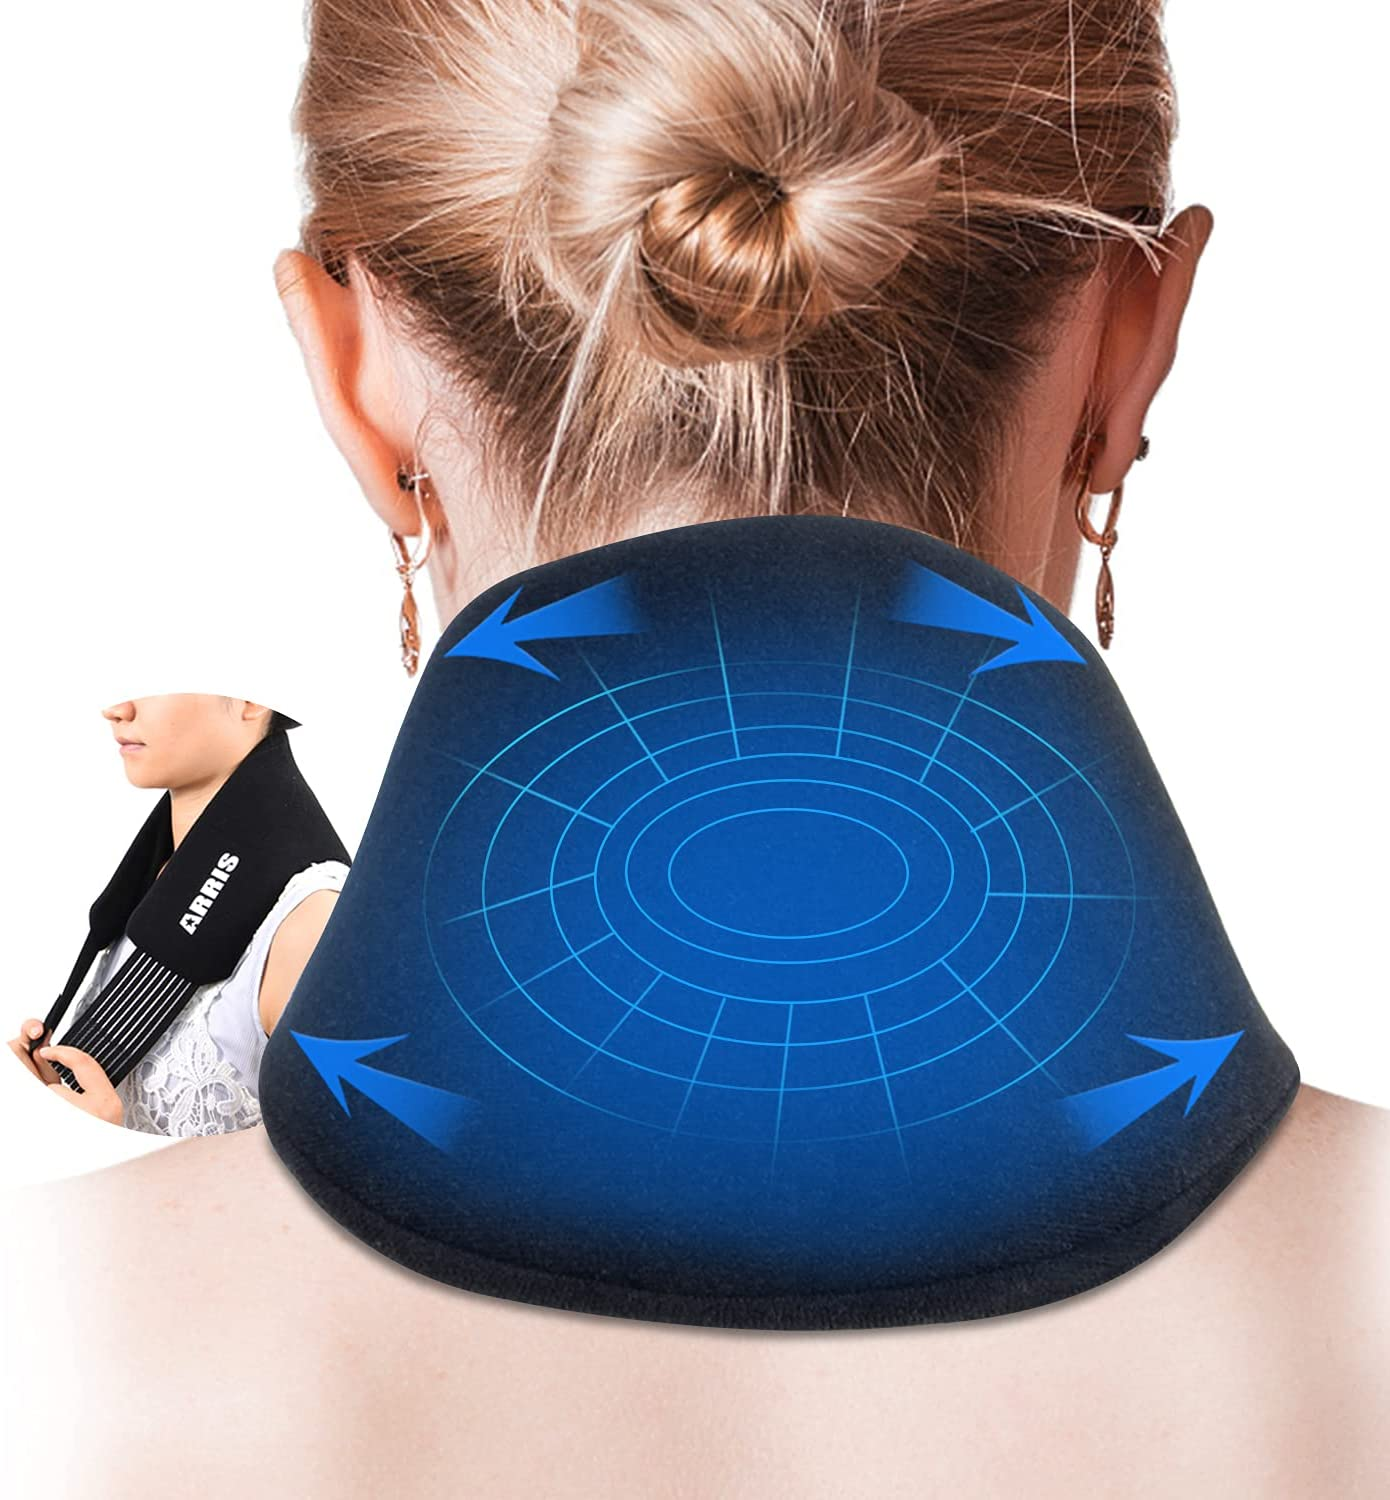 Neck Ice Pack with Straps - Cold Compress Neck Therapy Wrap - Soothing Pain Relief for Neck, Cervical, Shoulder- Reusable & Flexible Hot Cold Gel Packs for Swelling, Injuries, Headache (ARRIS) : Health & Household